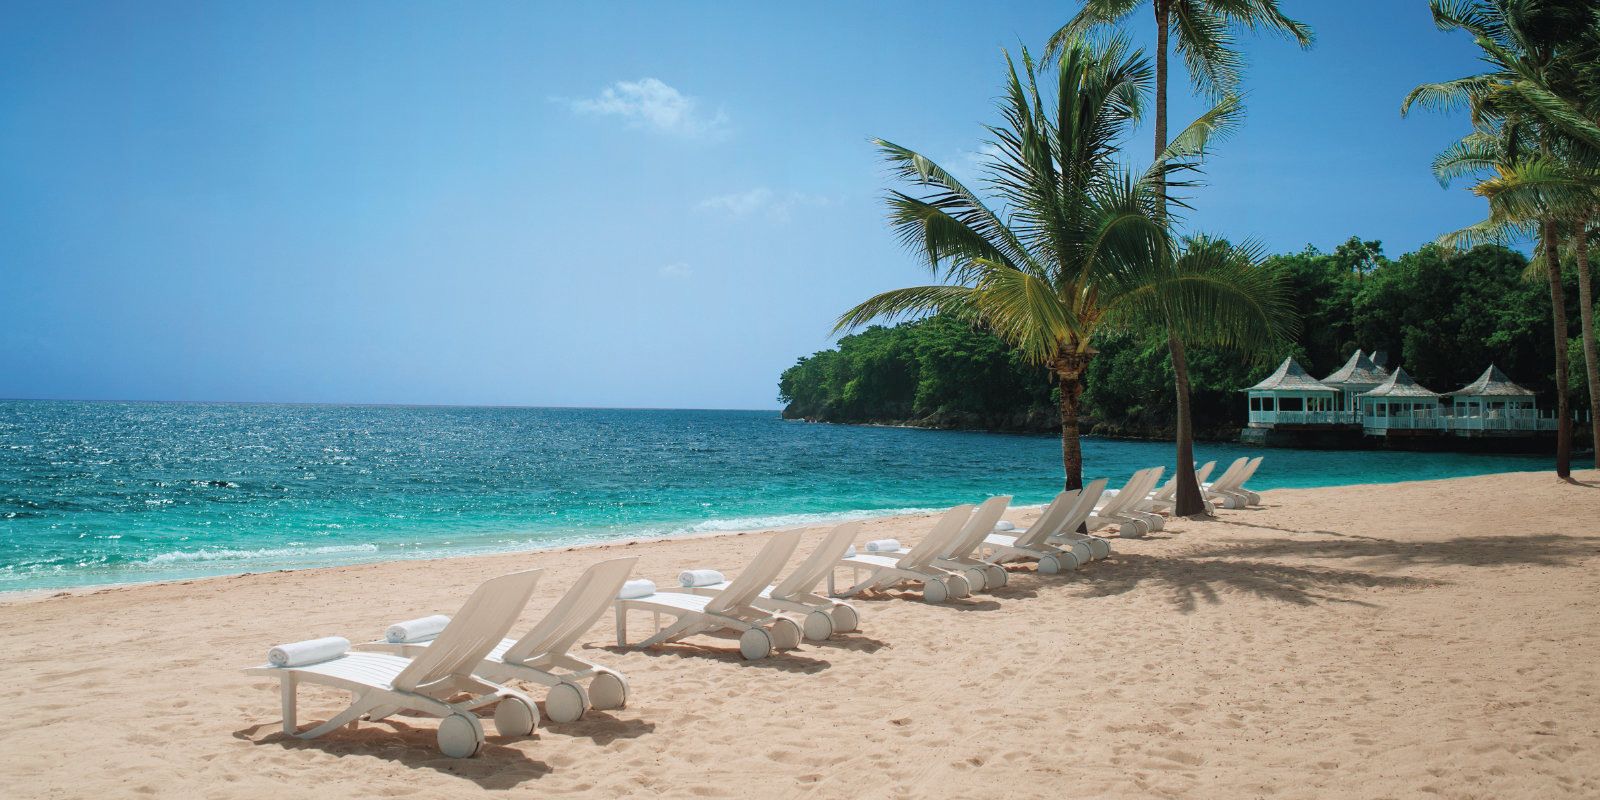 Travel blog: Discover Couples Tower Isle – A Jamaican Jewel